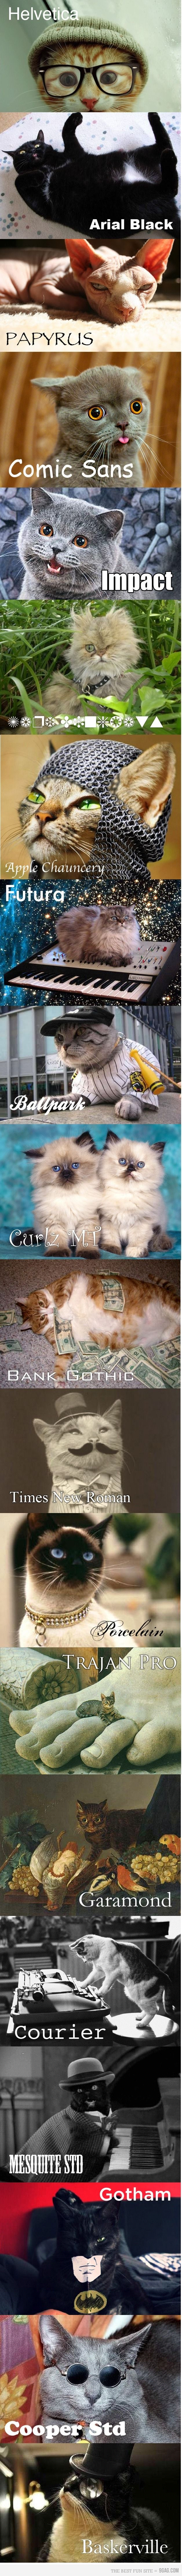 Cats as fonts. I don't think this could be any funnier.